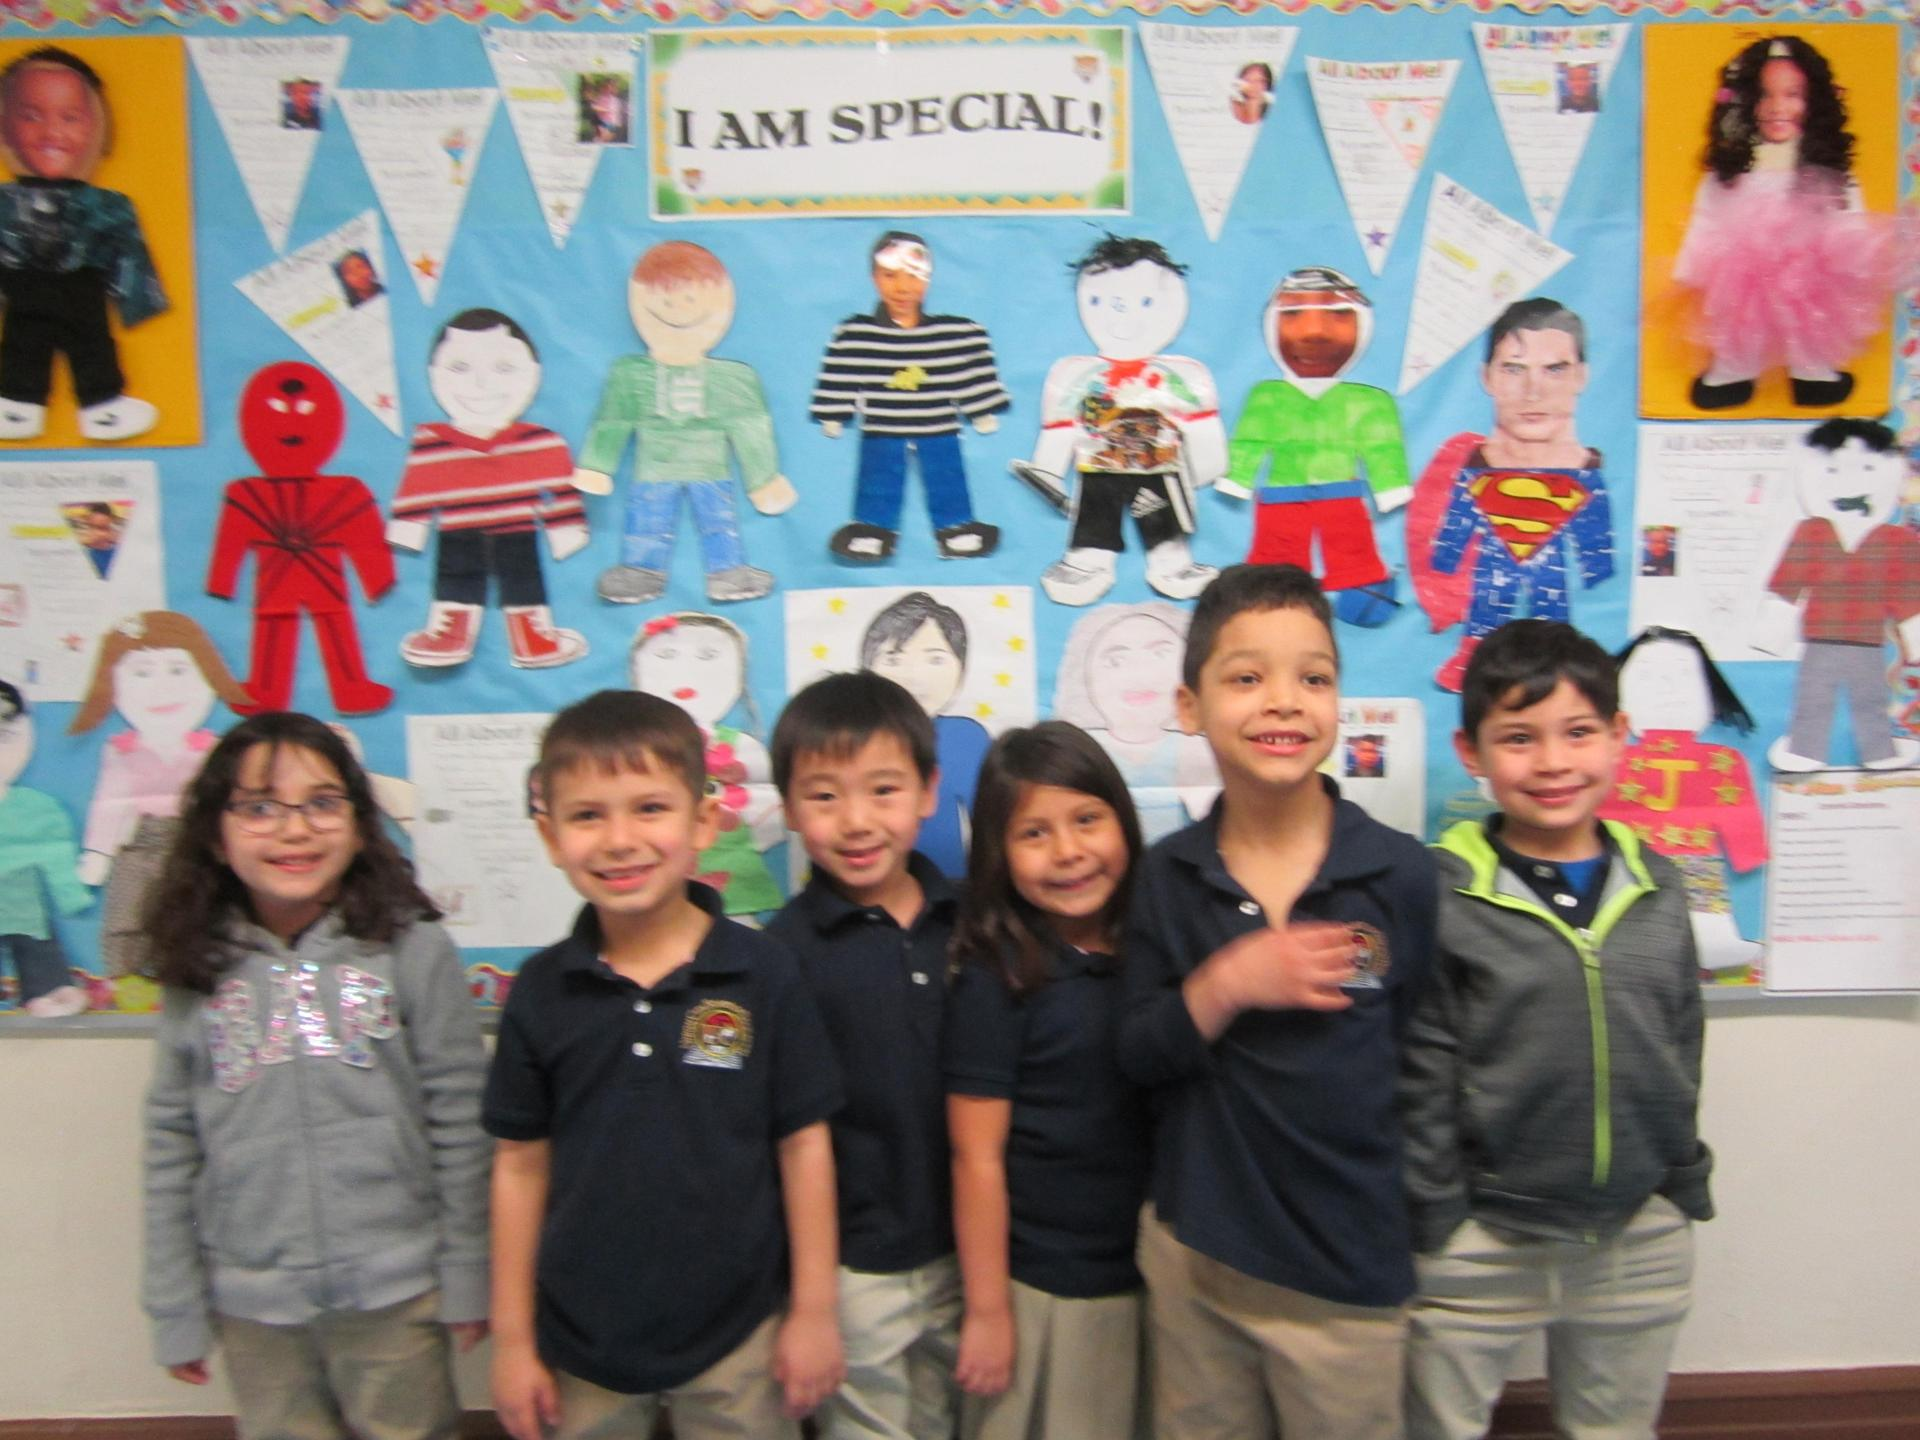 kids showing off the bulletin board they created